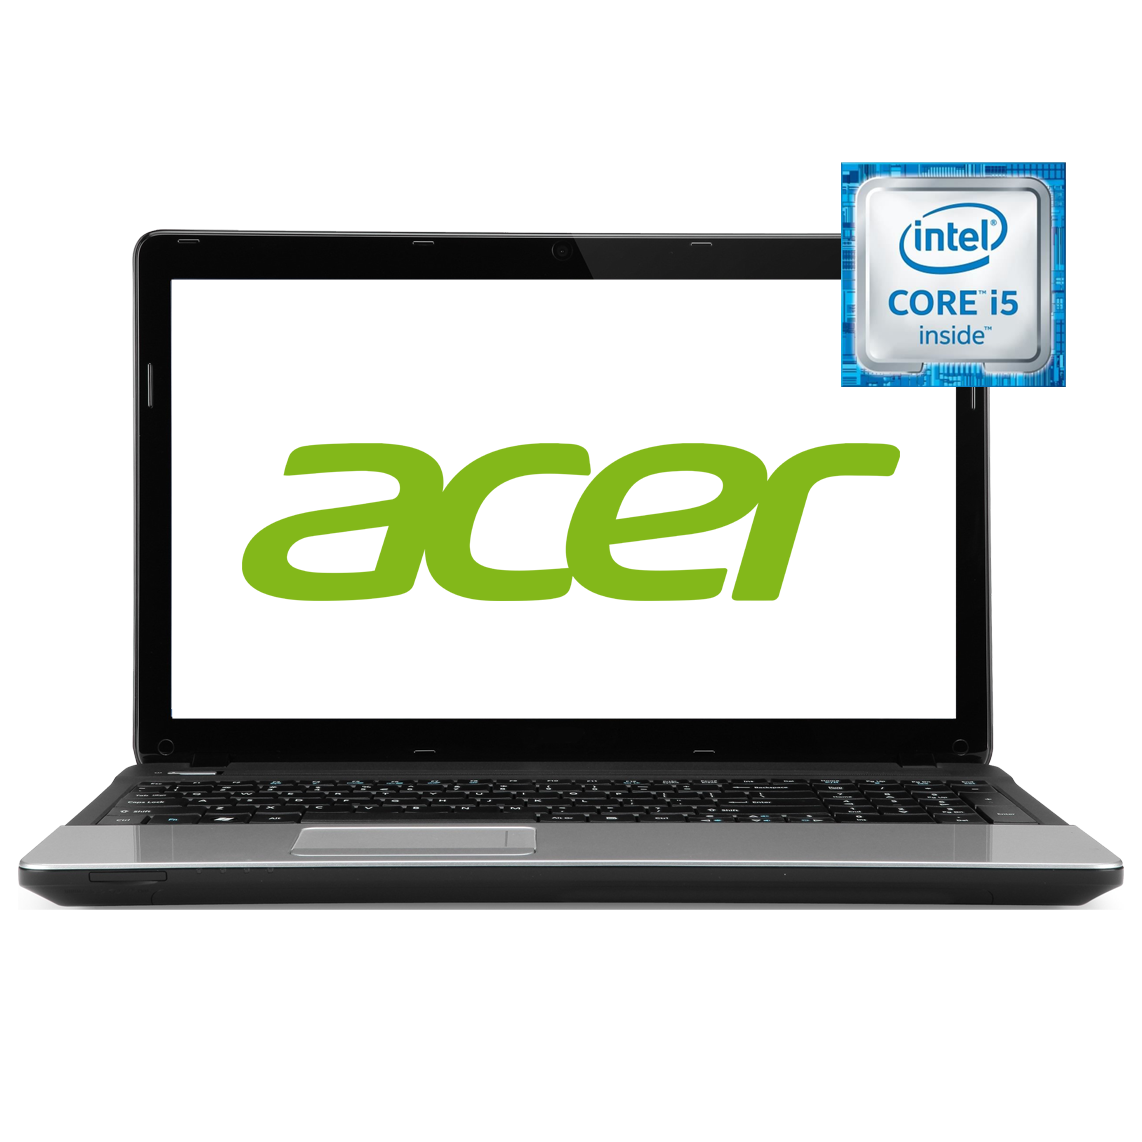 Acer - 15 inch Core i5 2nd Gen